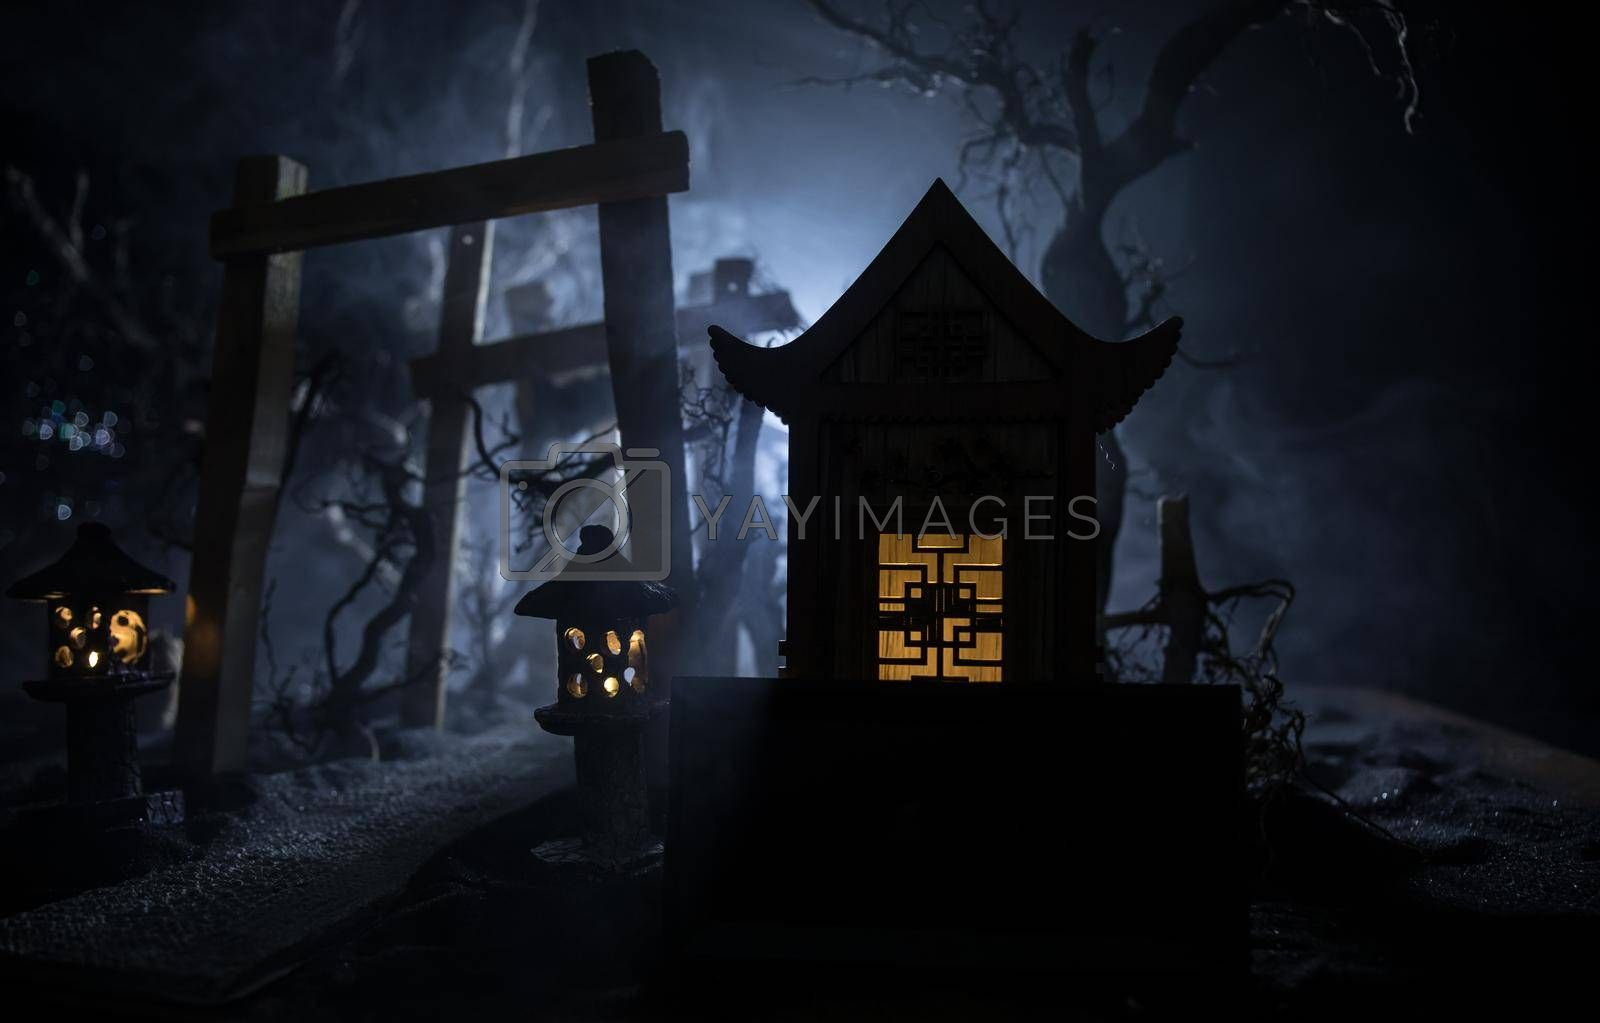 Creative artwork decoration. Abstract Japanese style wooden tunnel at night. Night scene in fantasy forest. Selective focus